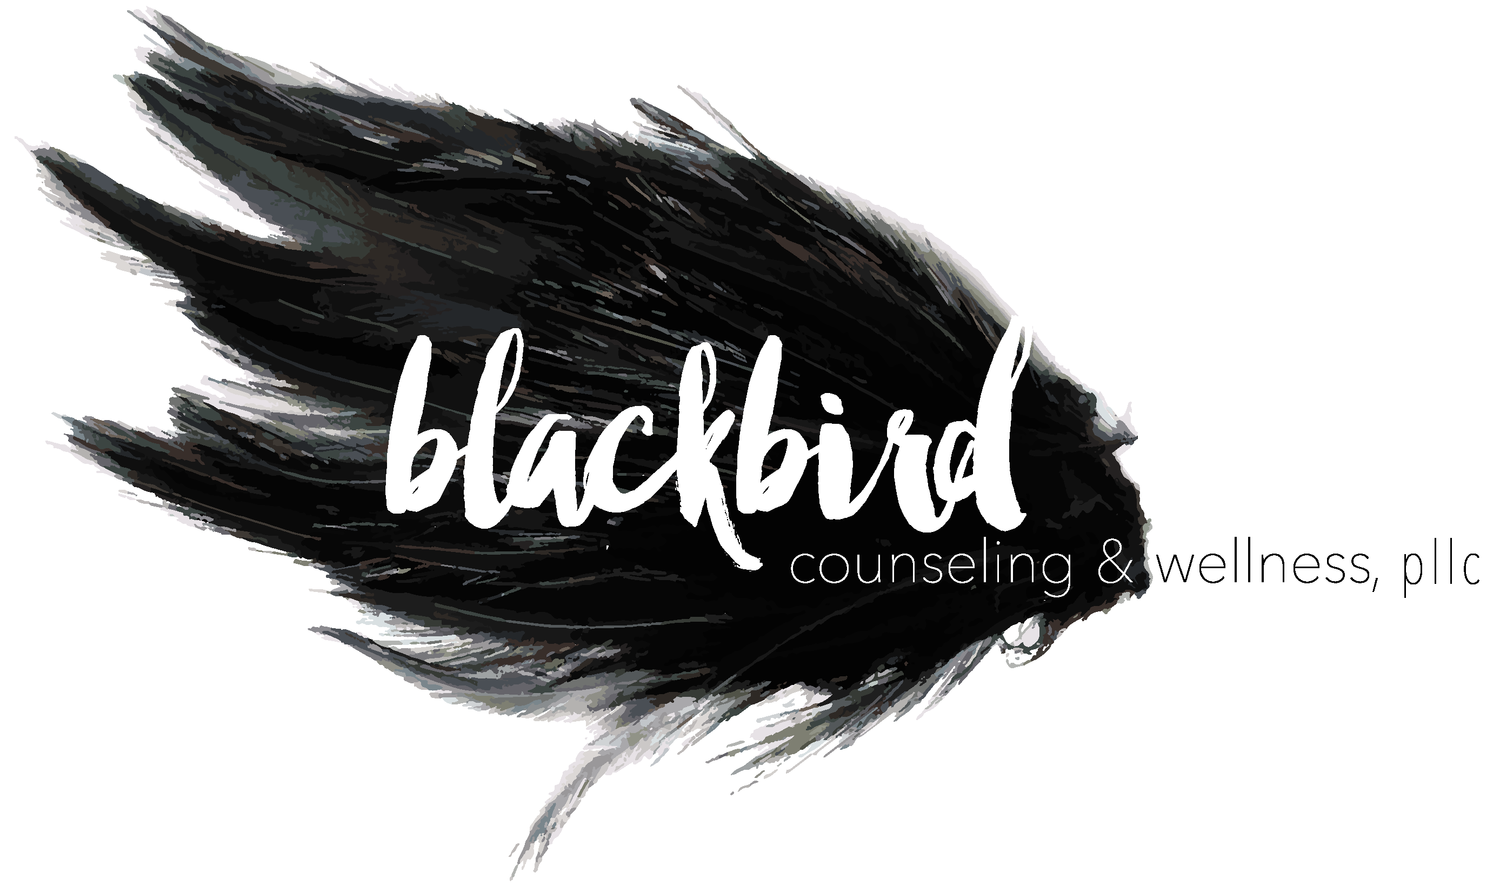 Blackbird Counseling & Wellness San Antonio